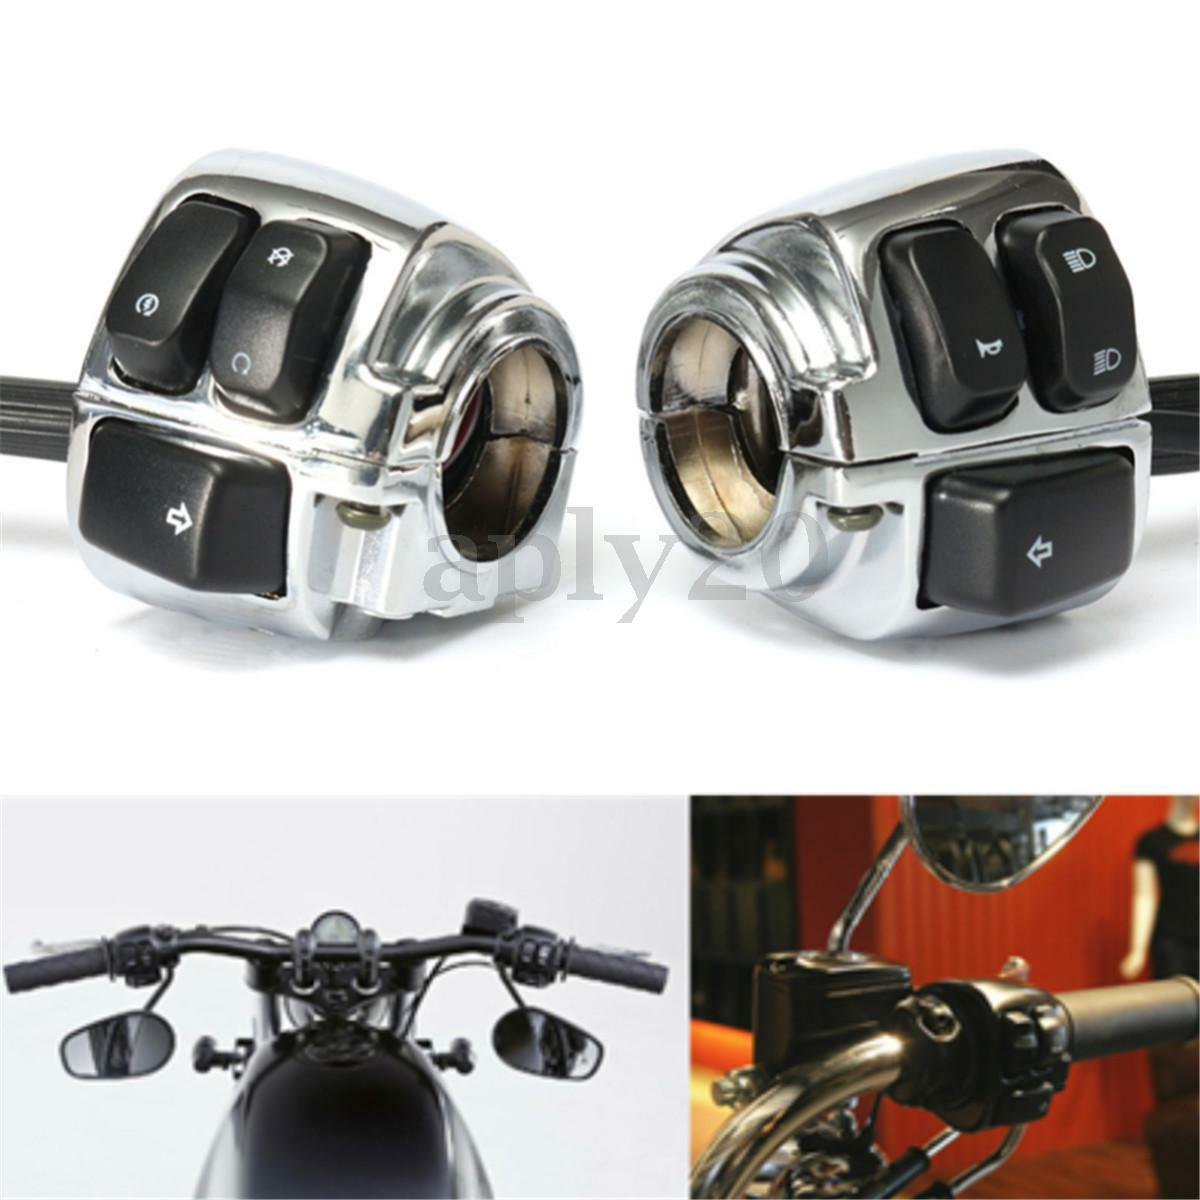 Chrome Motorcycle 1 Handlebar Control Switch Housing Wiring Fxd Harness Of 12free Shipping